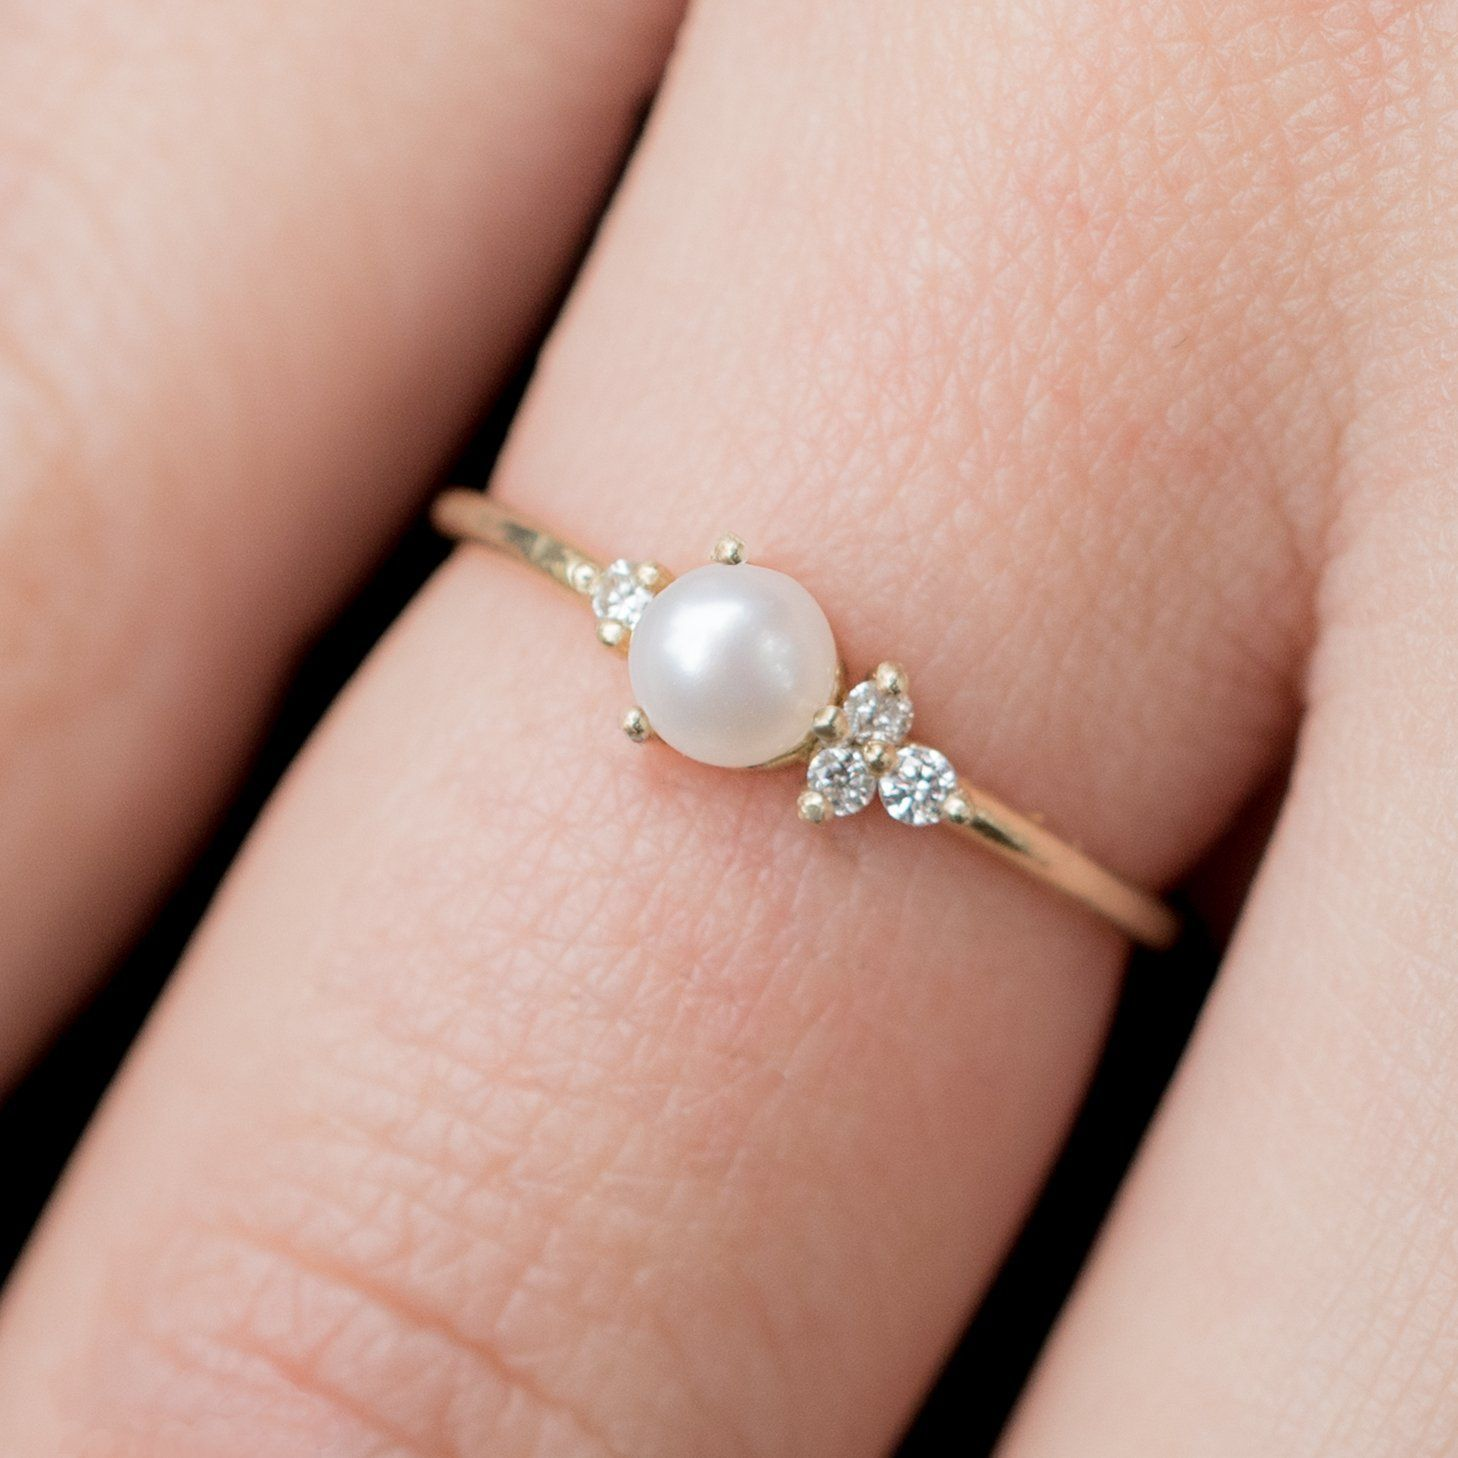 Pearl and Diamond Ring | Solid gold, White diamonds and Heavens